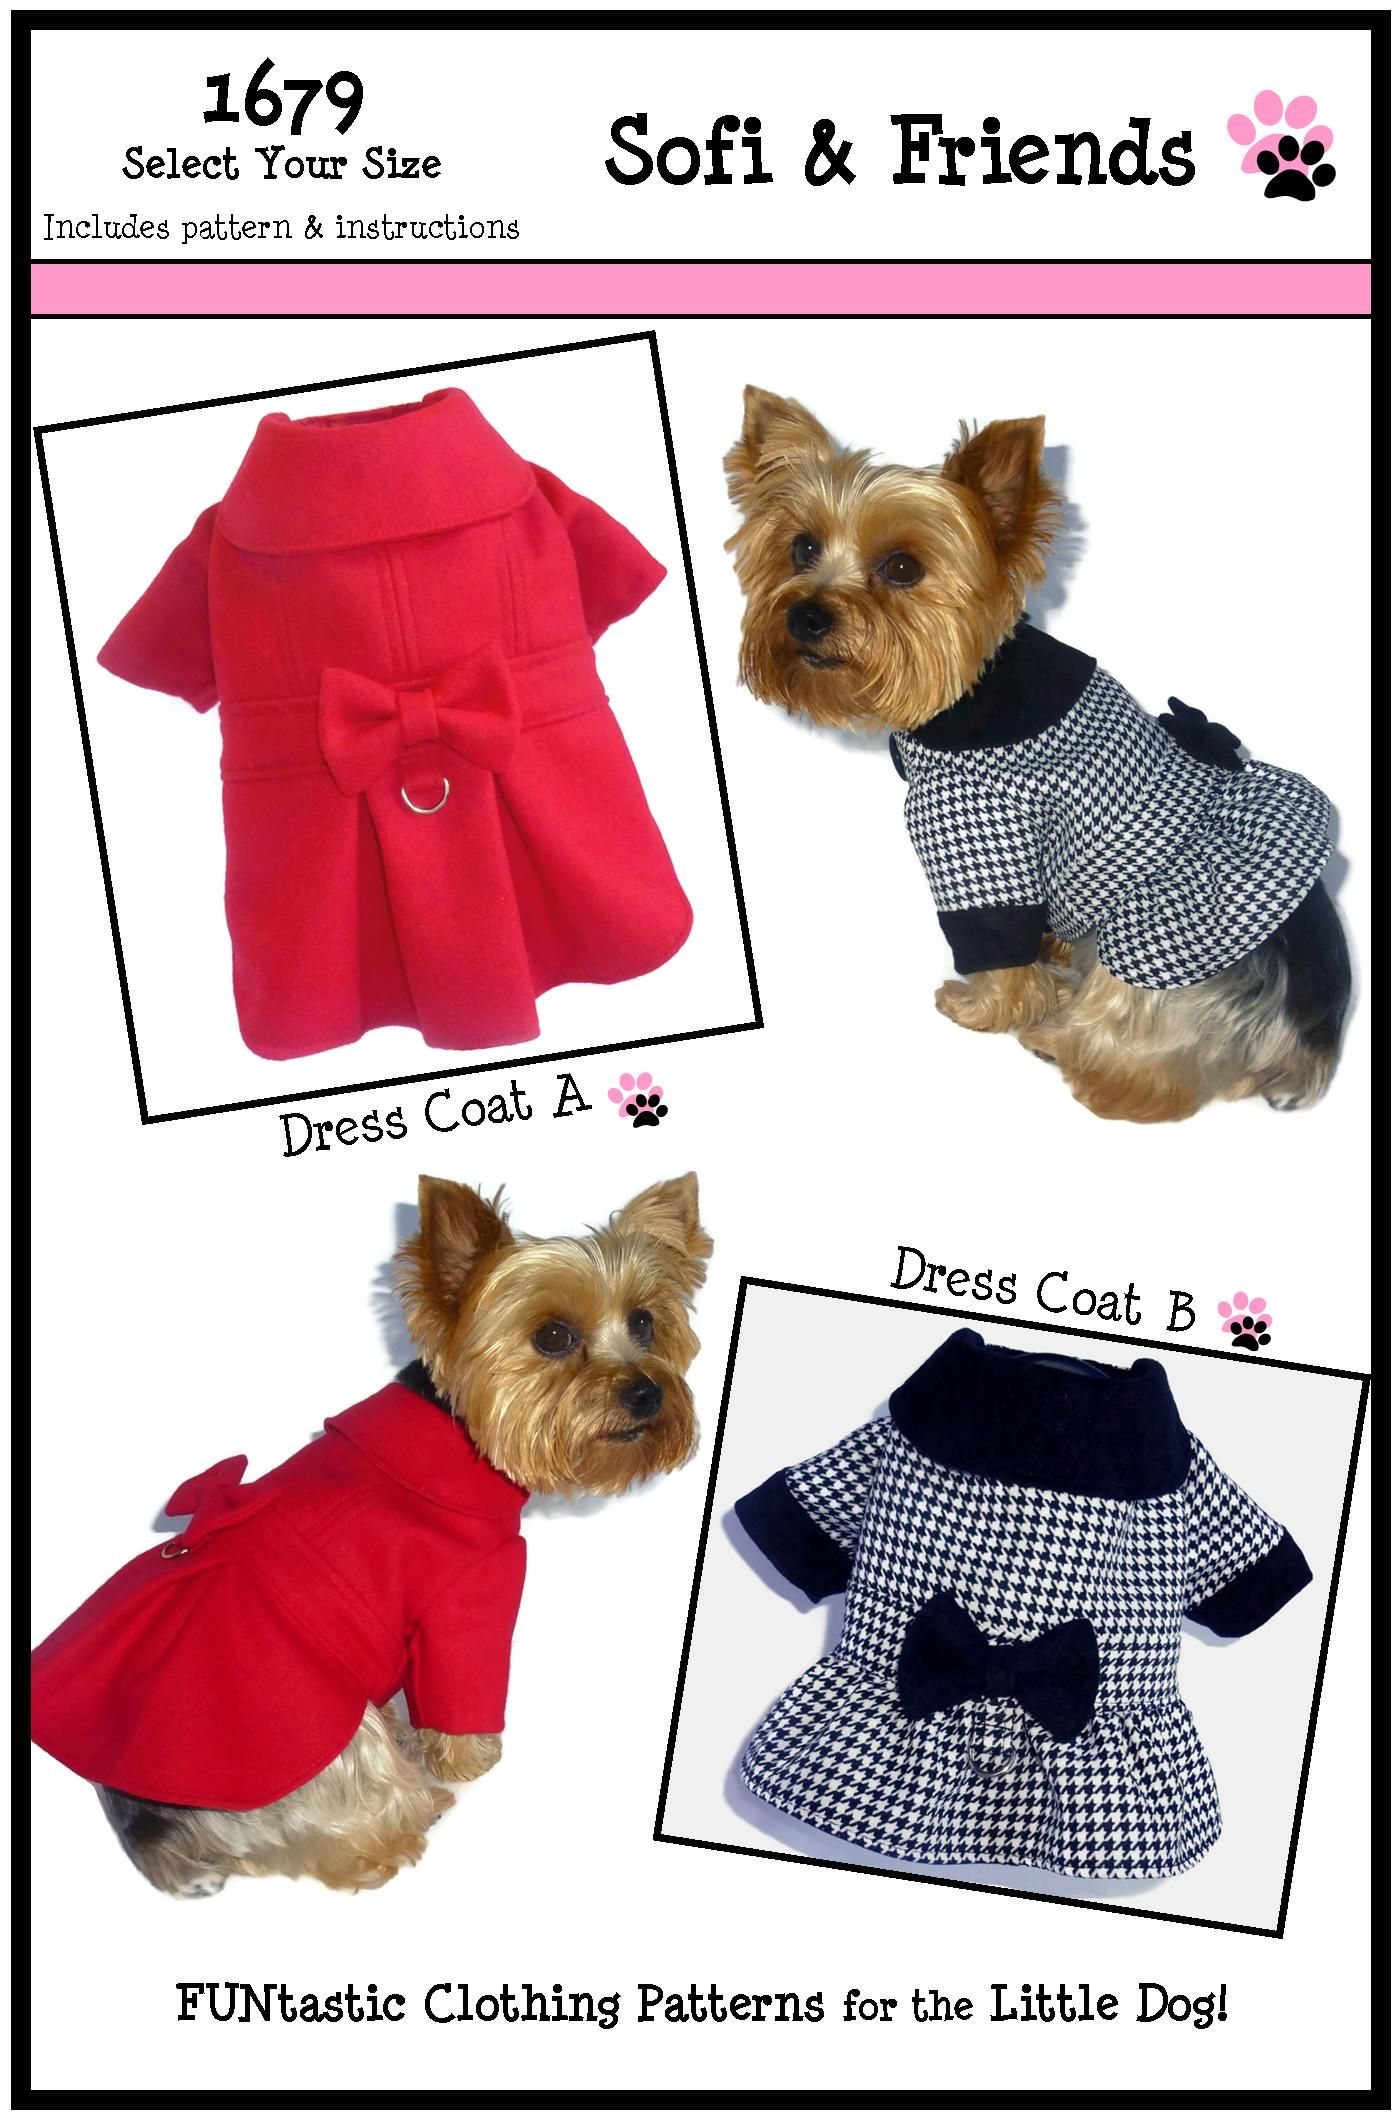 Dog clothes sewing pattern 1679 dress coat for the little dog dog clothes sewing pattern 1679 dress coat for the little dog 825 jeuxipadfo Image collections